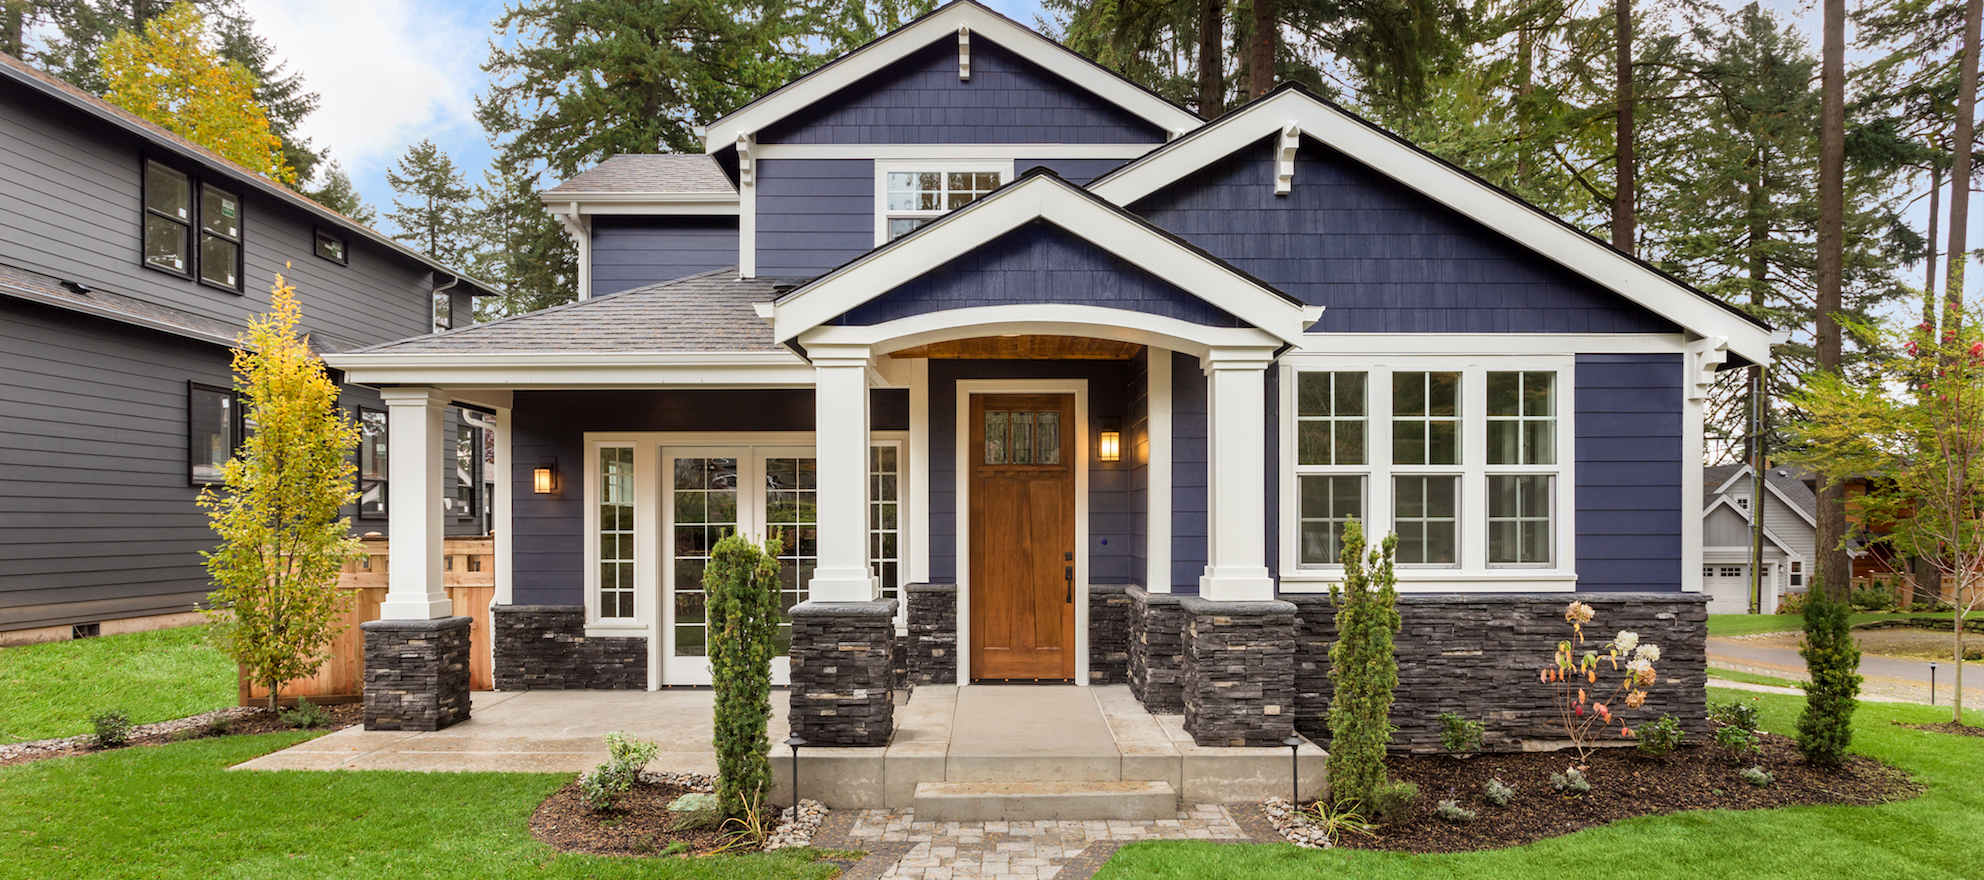 6 Simple Ways To Boost Your Listing's Curb Appeal - Inman